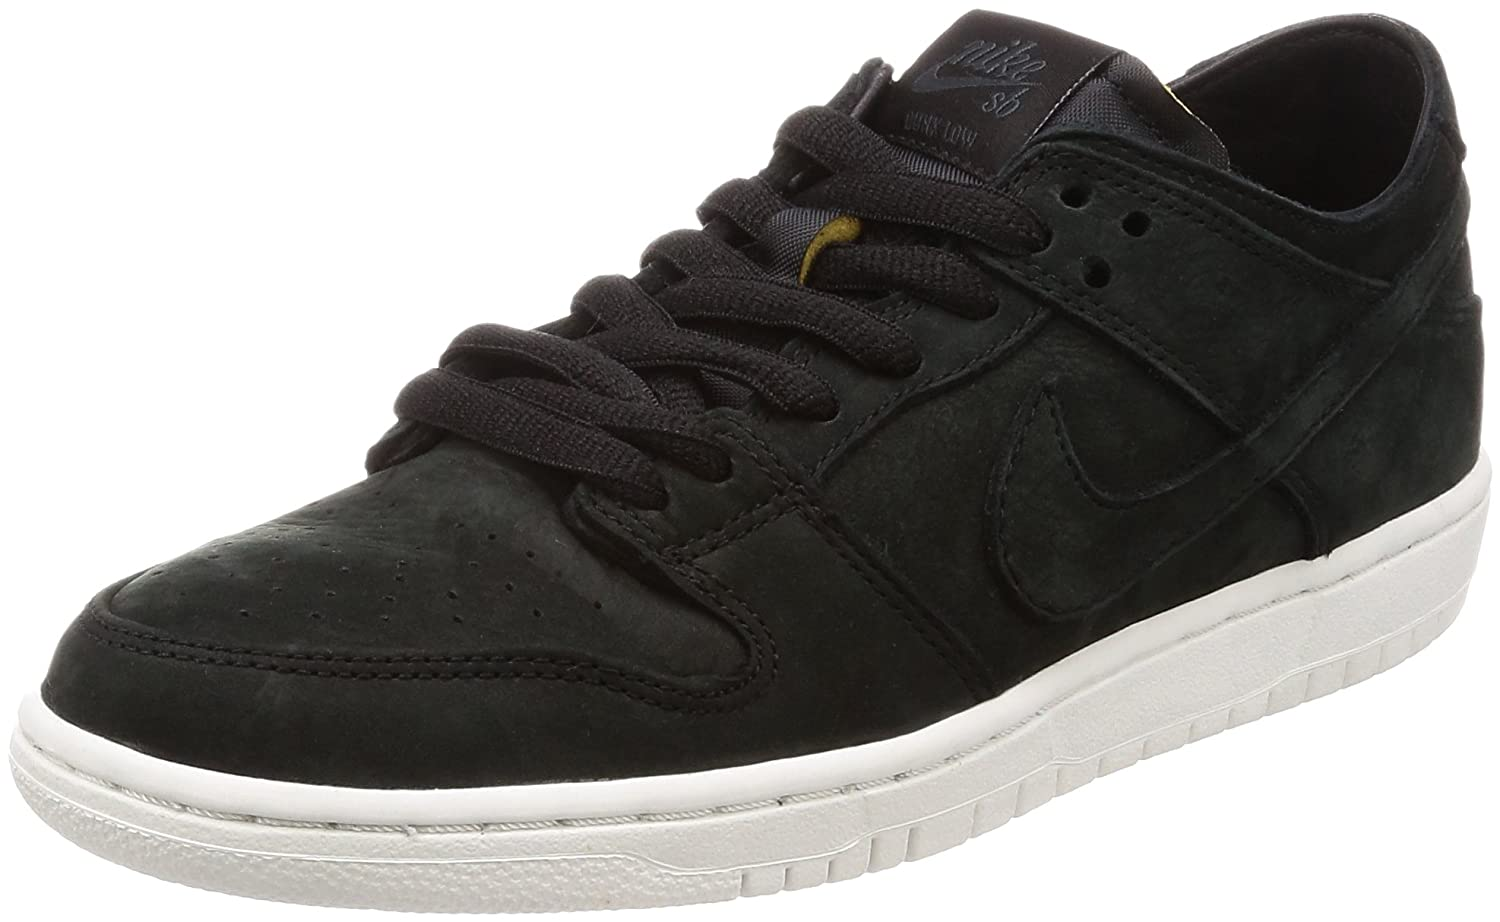 SB Zoom Dunk Low Pro Deconstructed Schuh  44 EU|Black/Black/Summit White